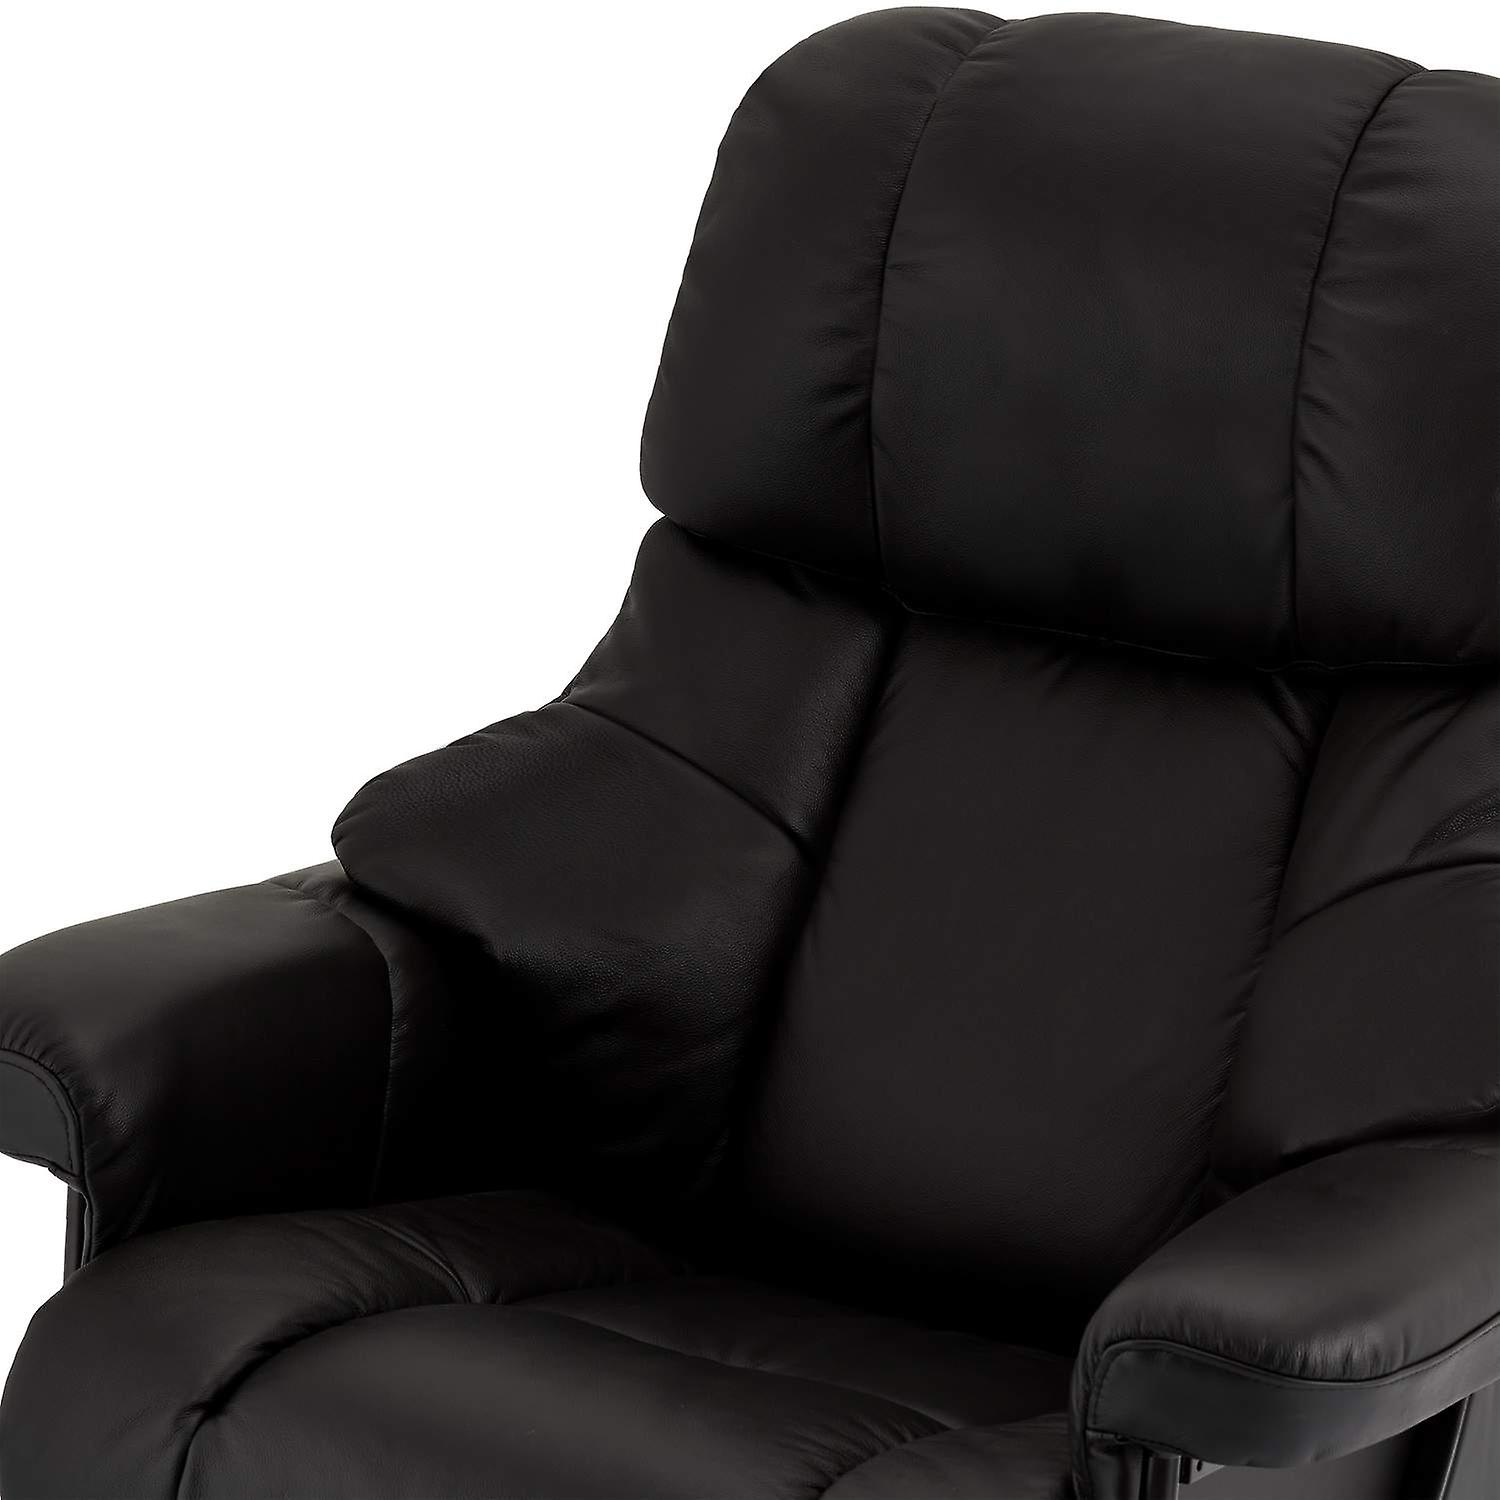 Furnhouse Black Leather Recliner Crown, 1 Seater, 83x88x107 cm